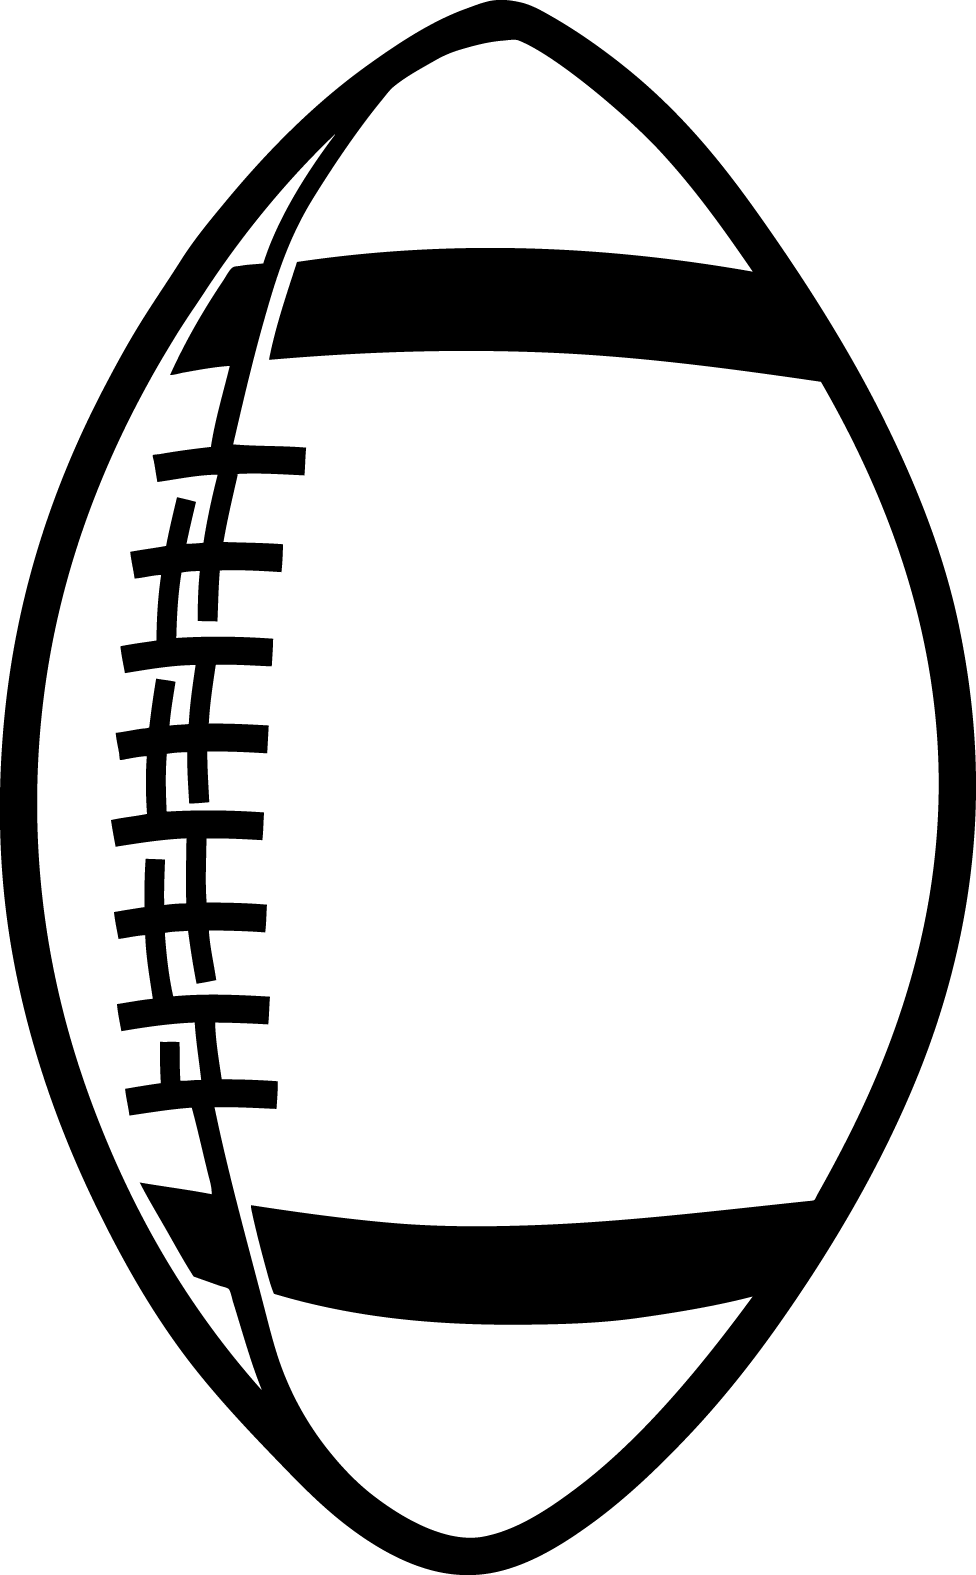 Dragonfly outline panda free. Clipart football